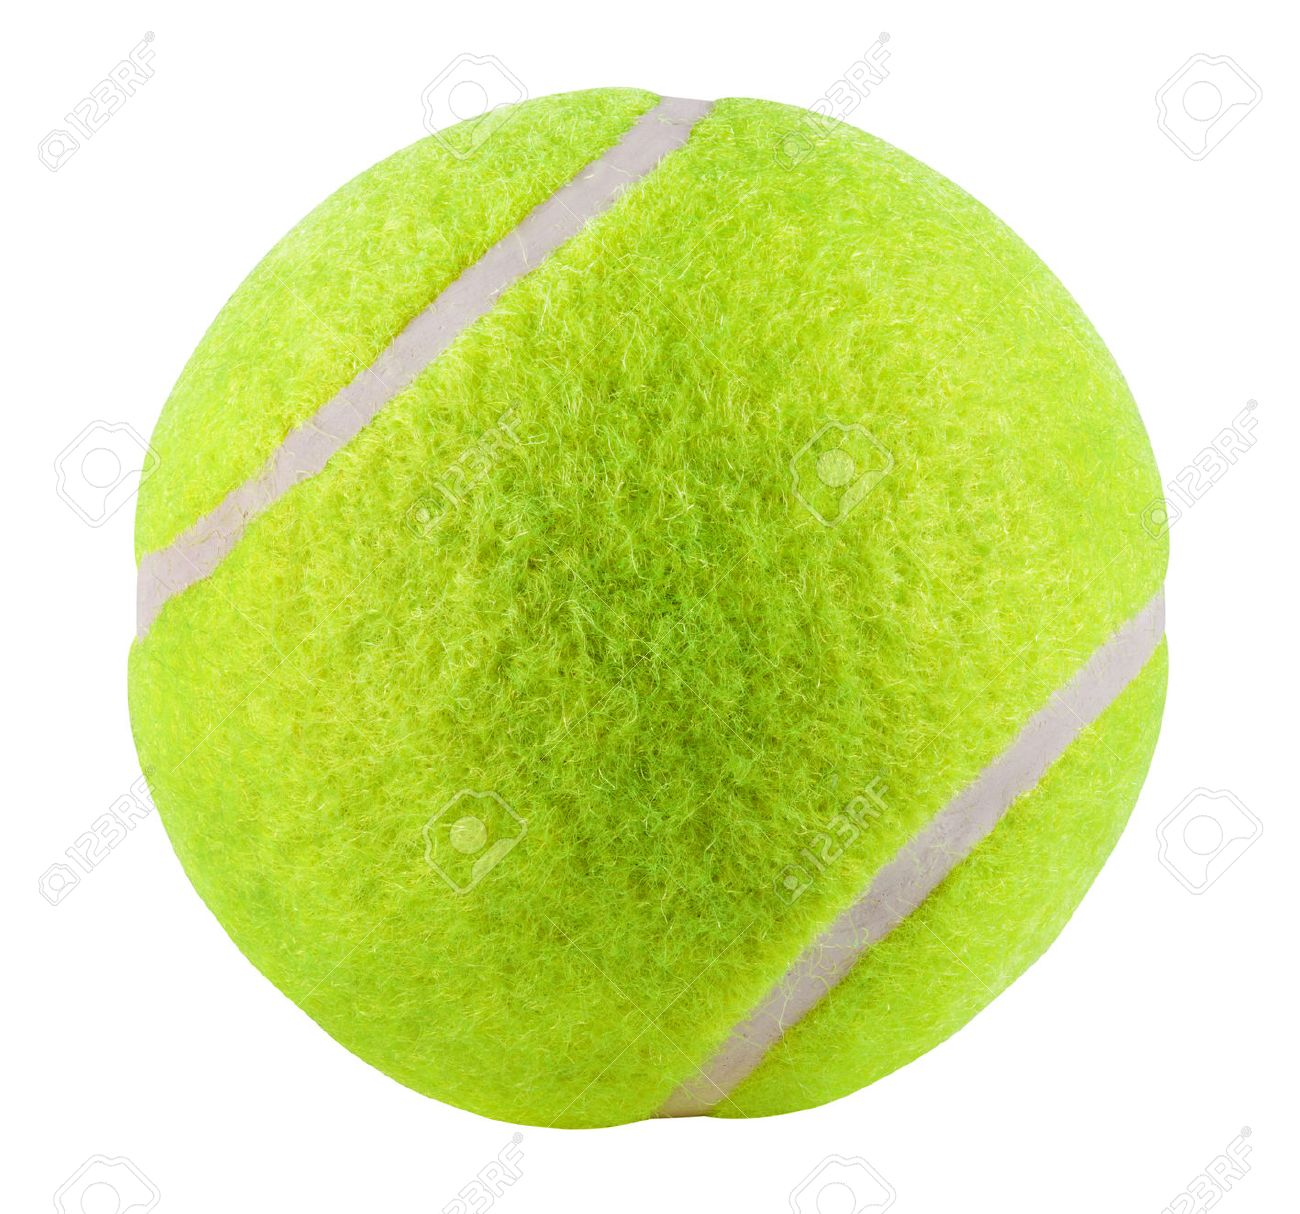 Tennis Ball Isolated On White Background Clipping Path Stock Photo Picture And Royalty Free Image Image 36287191